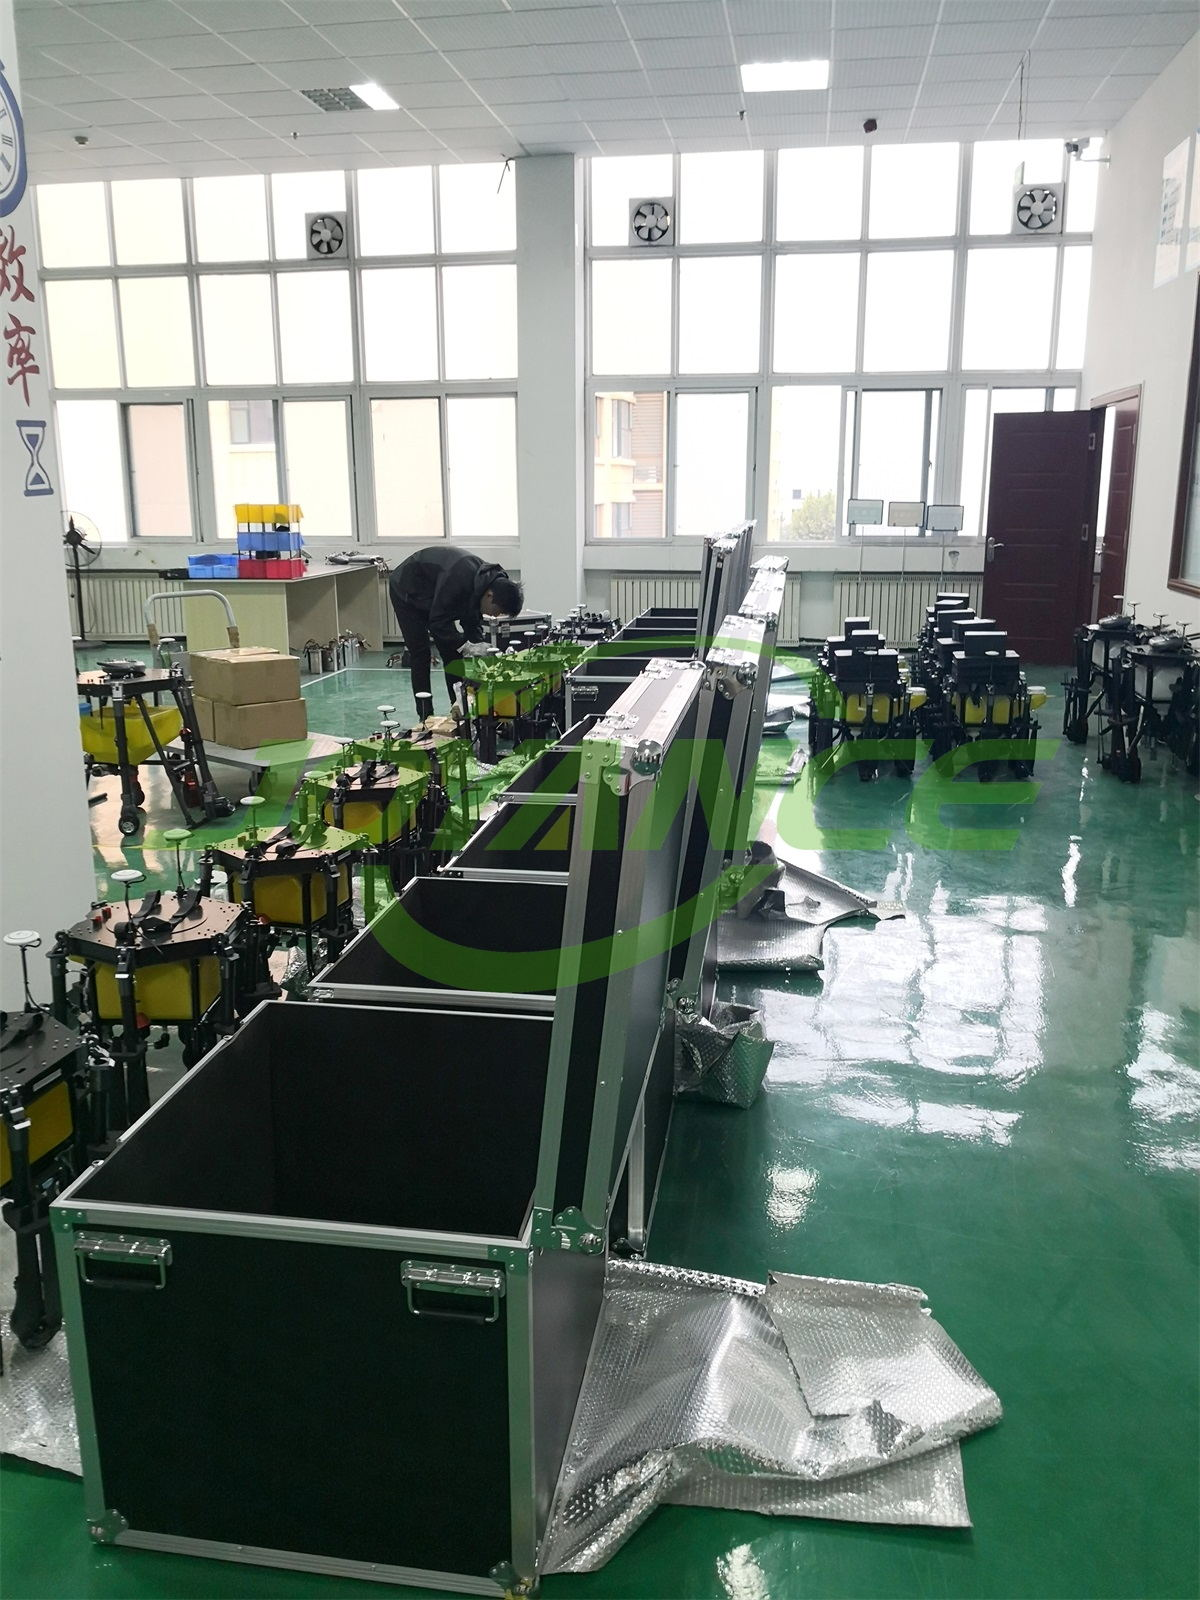 Joyance sprayer drone are ready for shipment to frequent customer